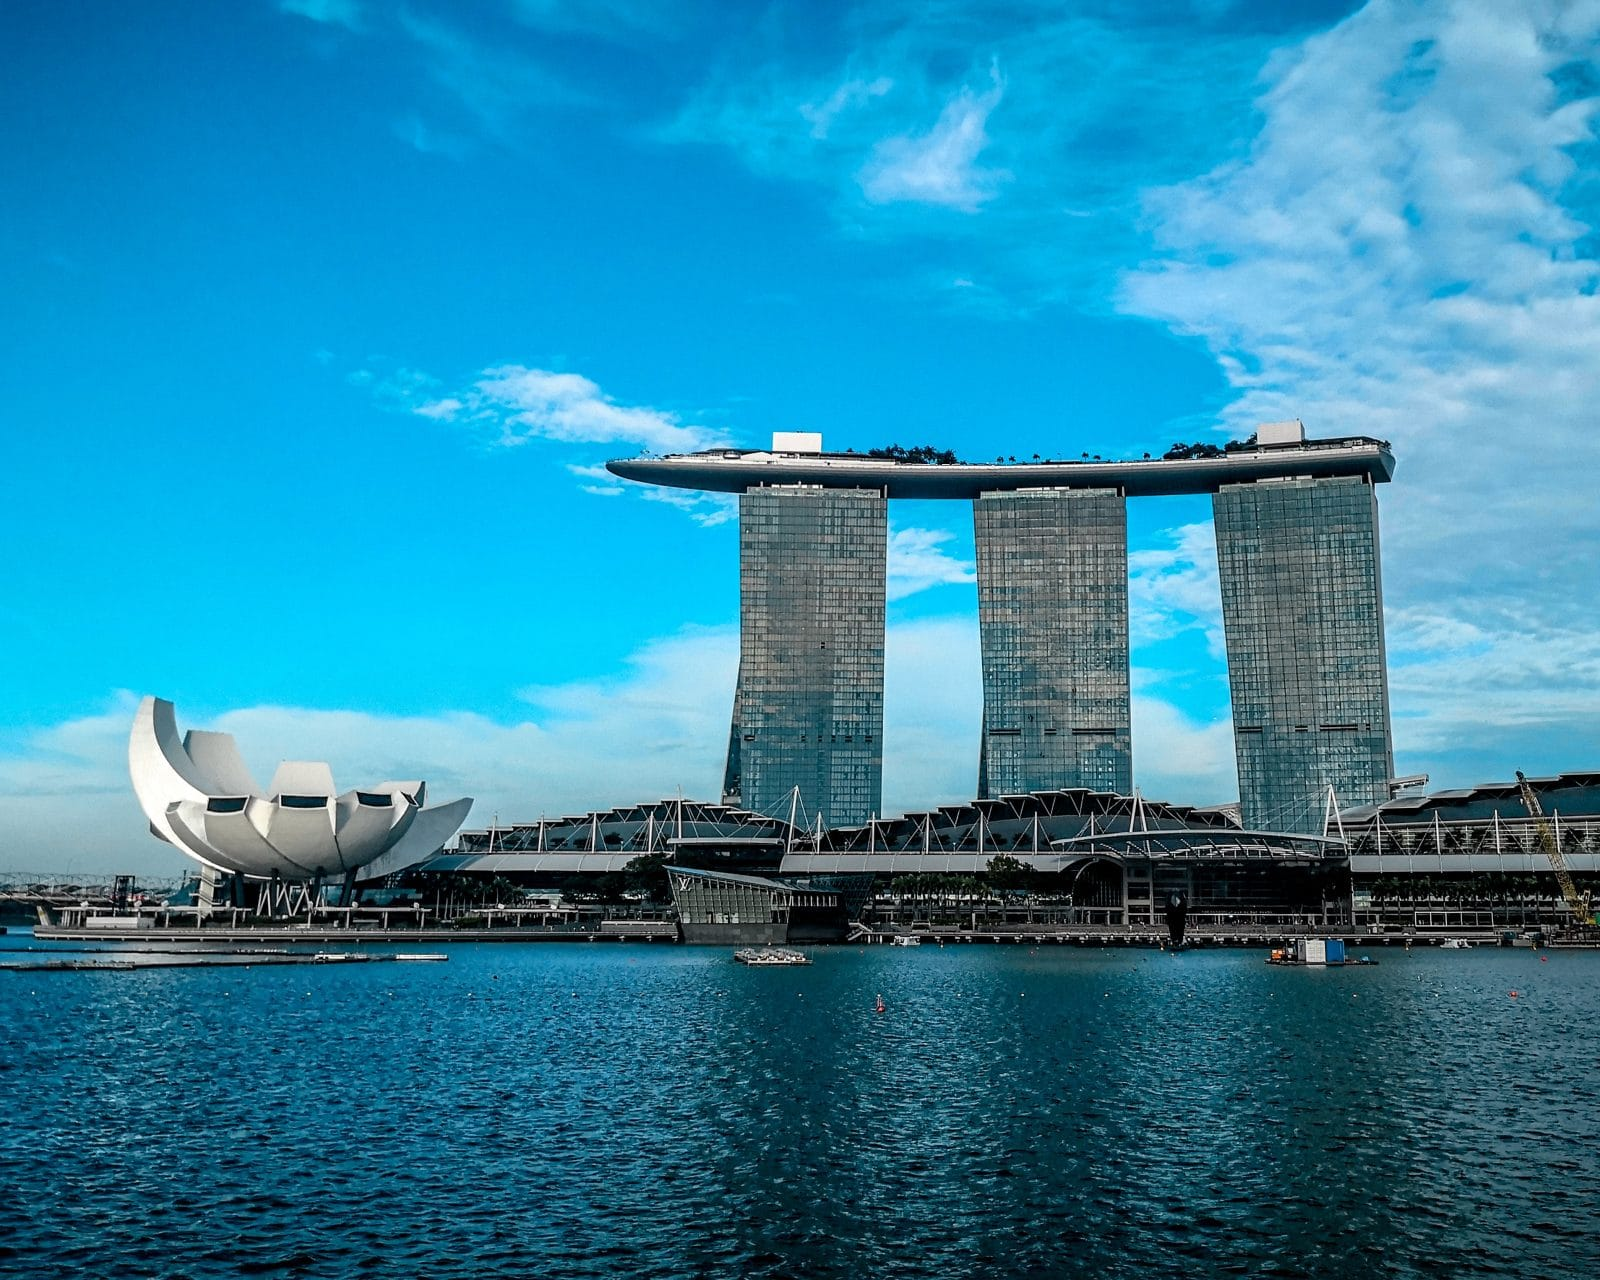 Singapore and Canada Central Banks Settle their First Blockchain Backed Cross-Border Remittances